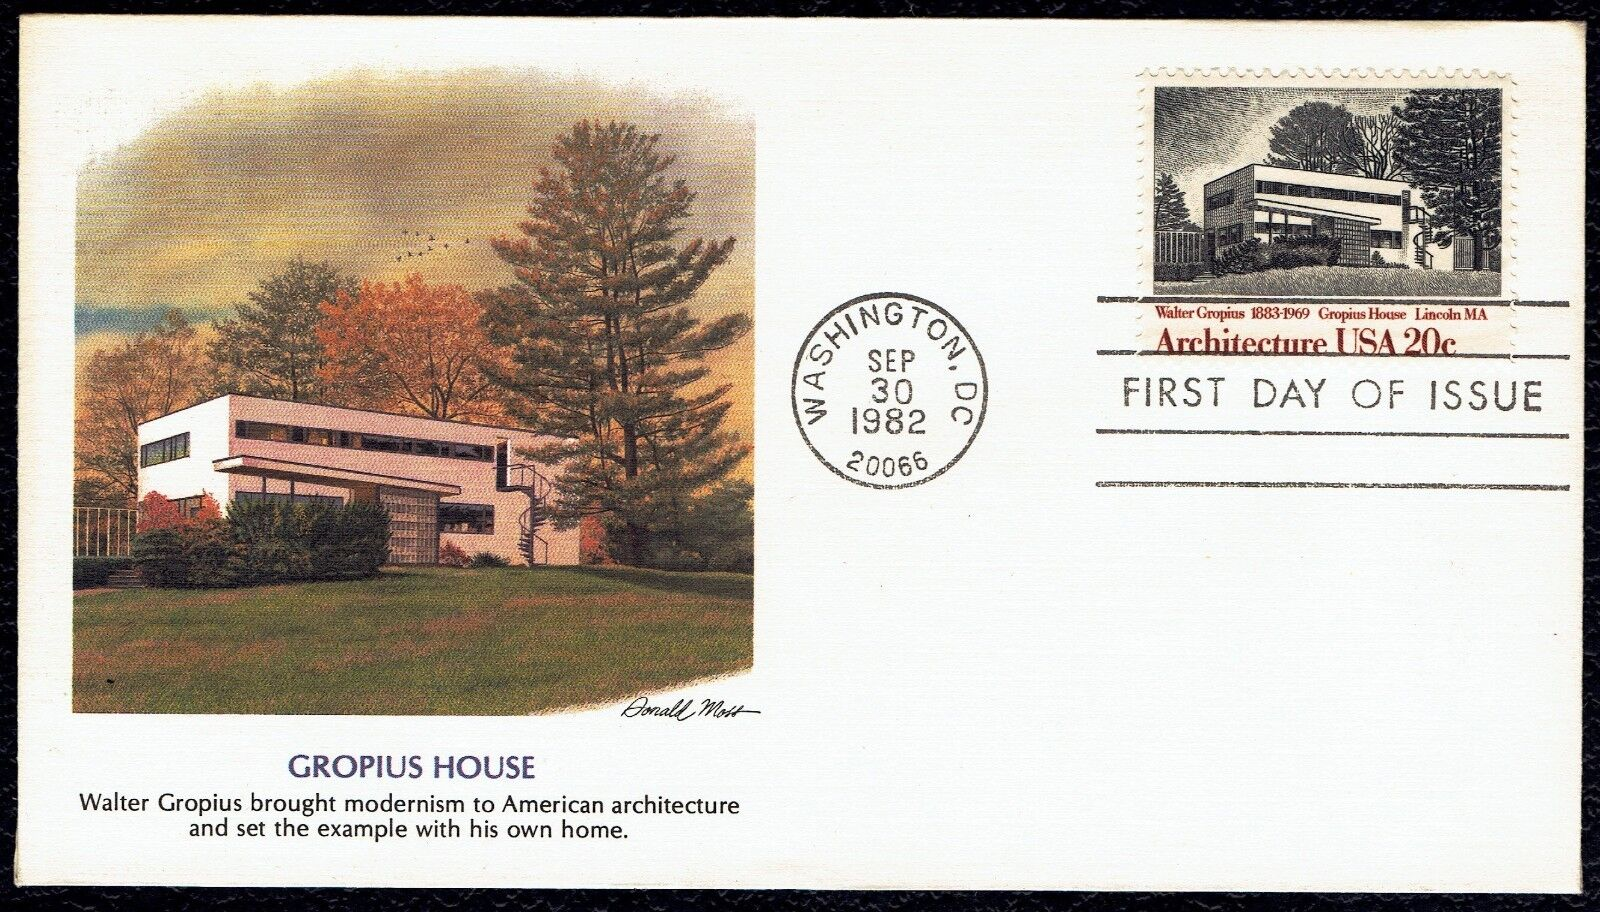 US 2021 Gropius House American Architecture 1982 Fleetwood FDC F2021-1 - $2.99